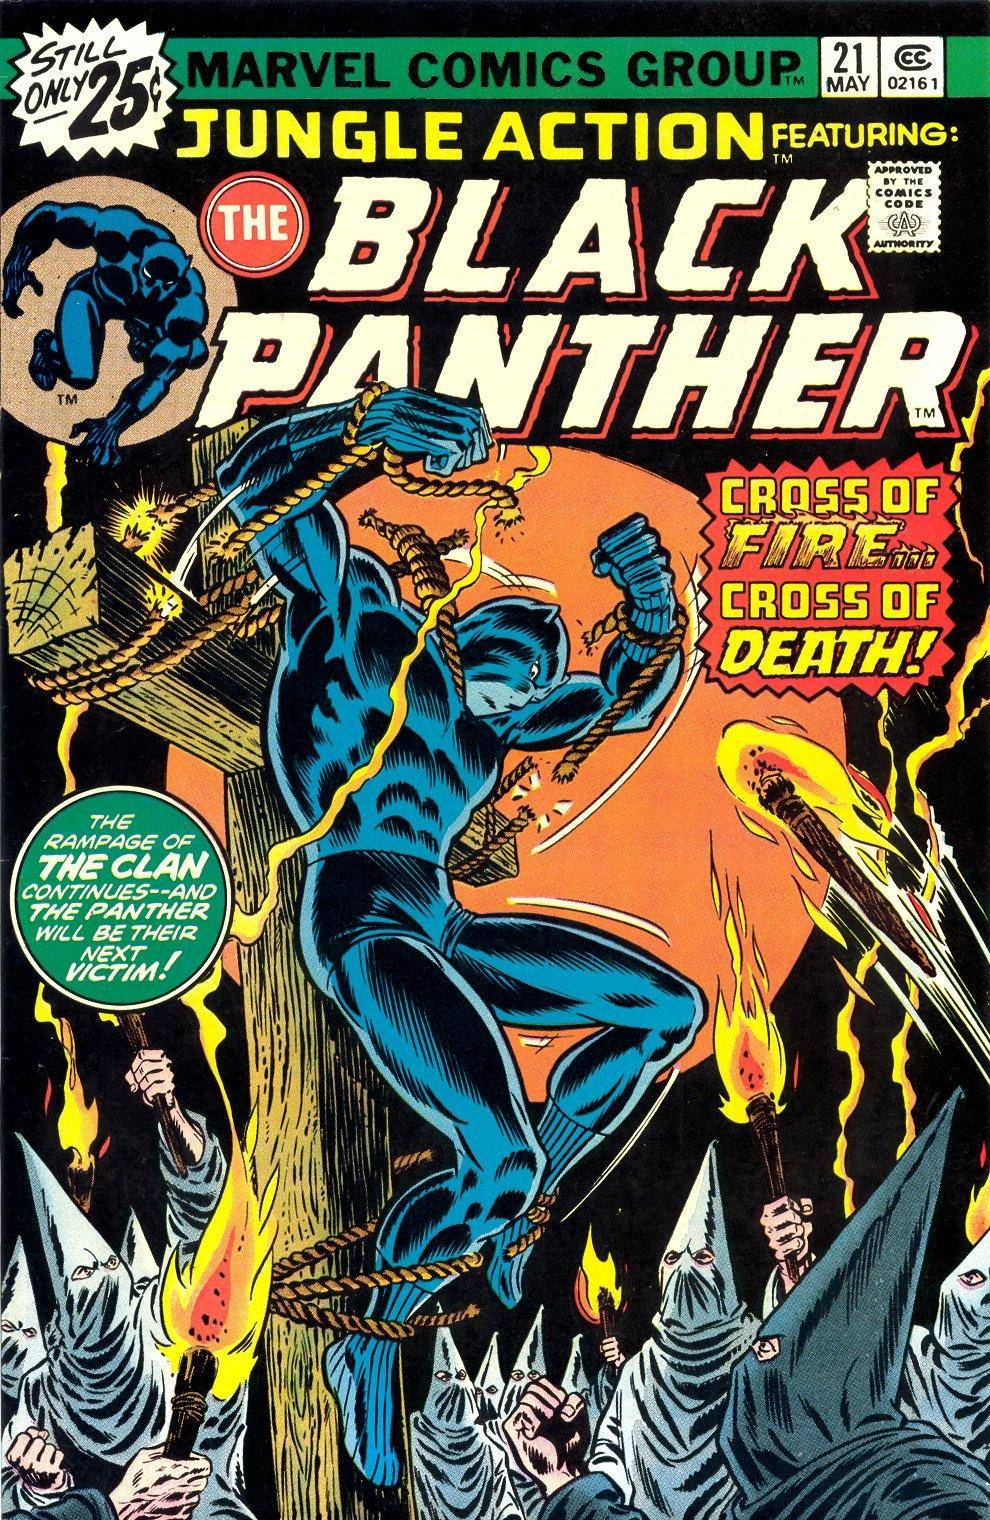 Jungle Action v2 021 featuring Black Panther